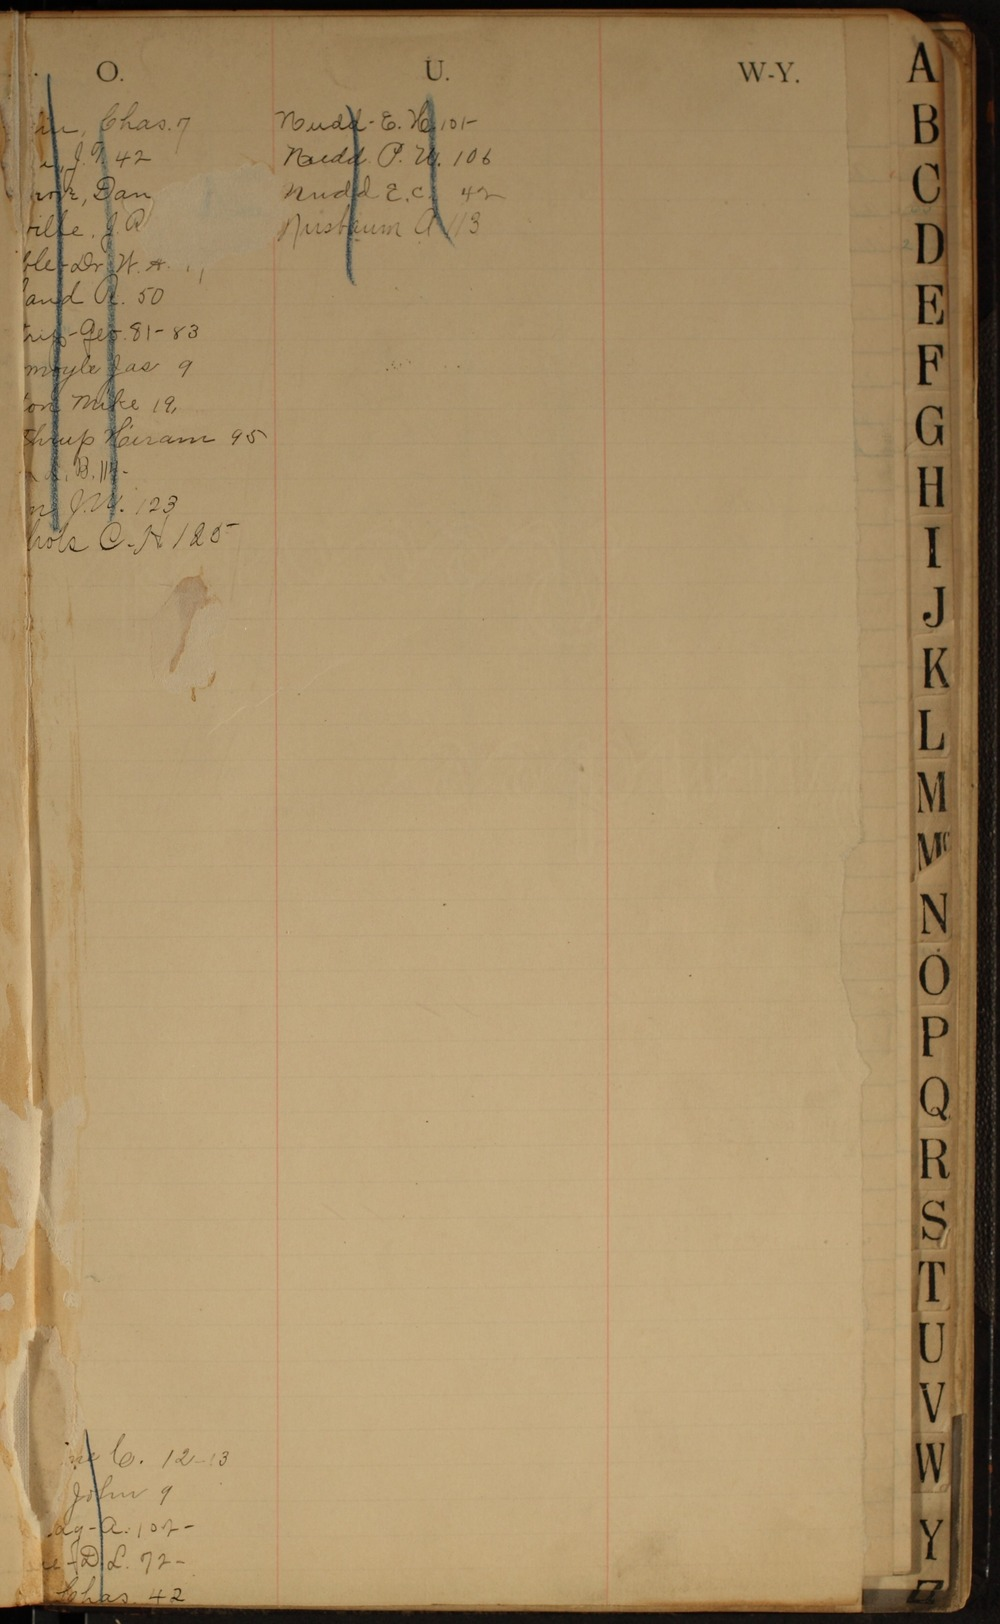 Hermon S. Major papers - Extra Page